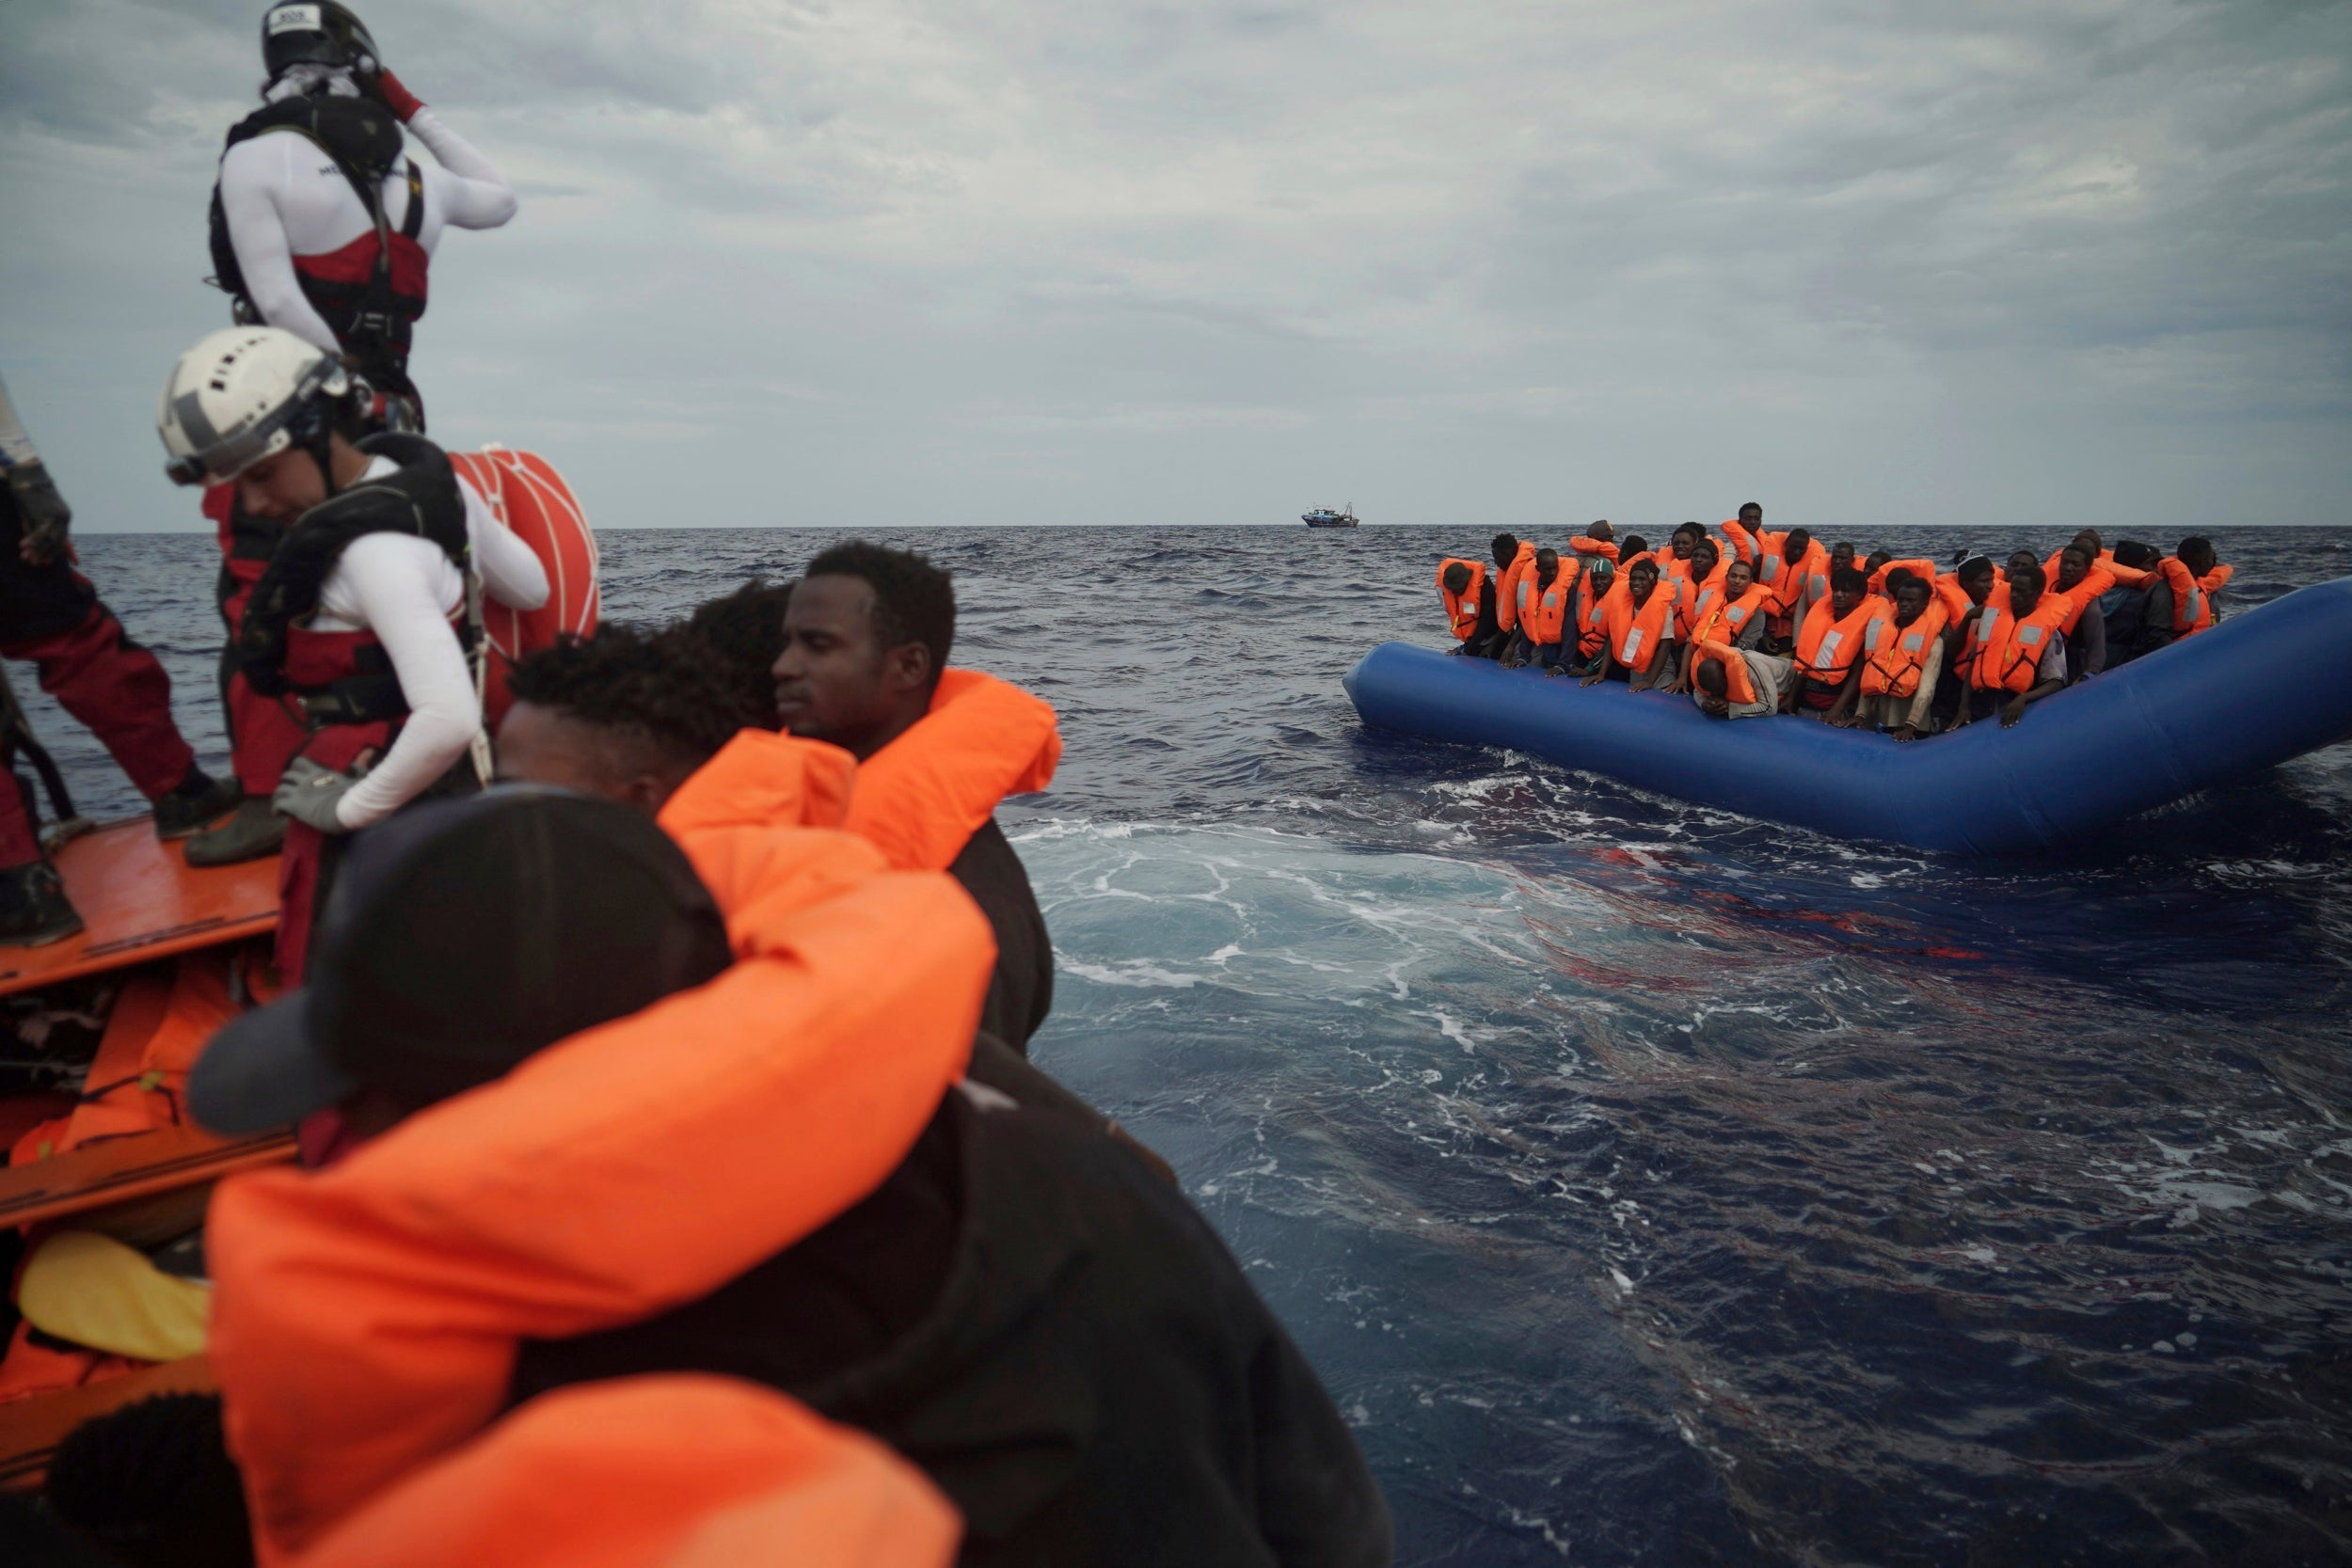 Italy 'puts an end' to Salvini era as 82 rescued migrants allowed to dock